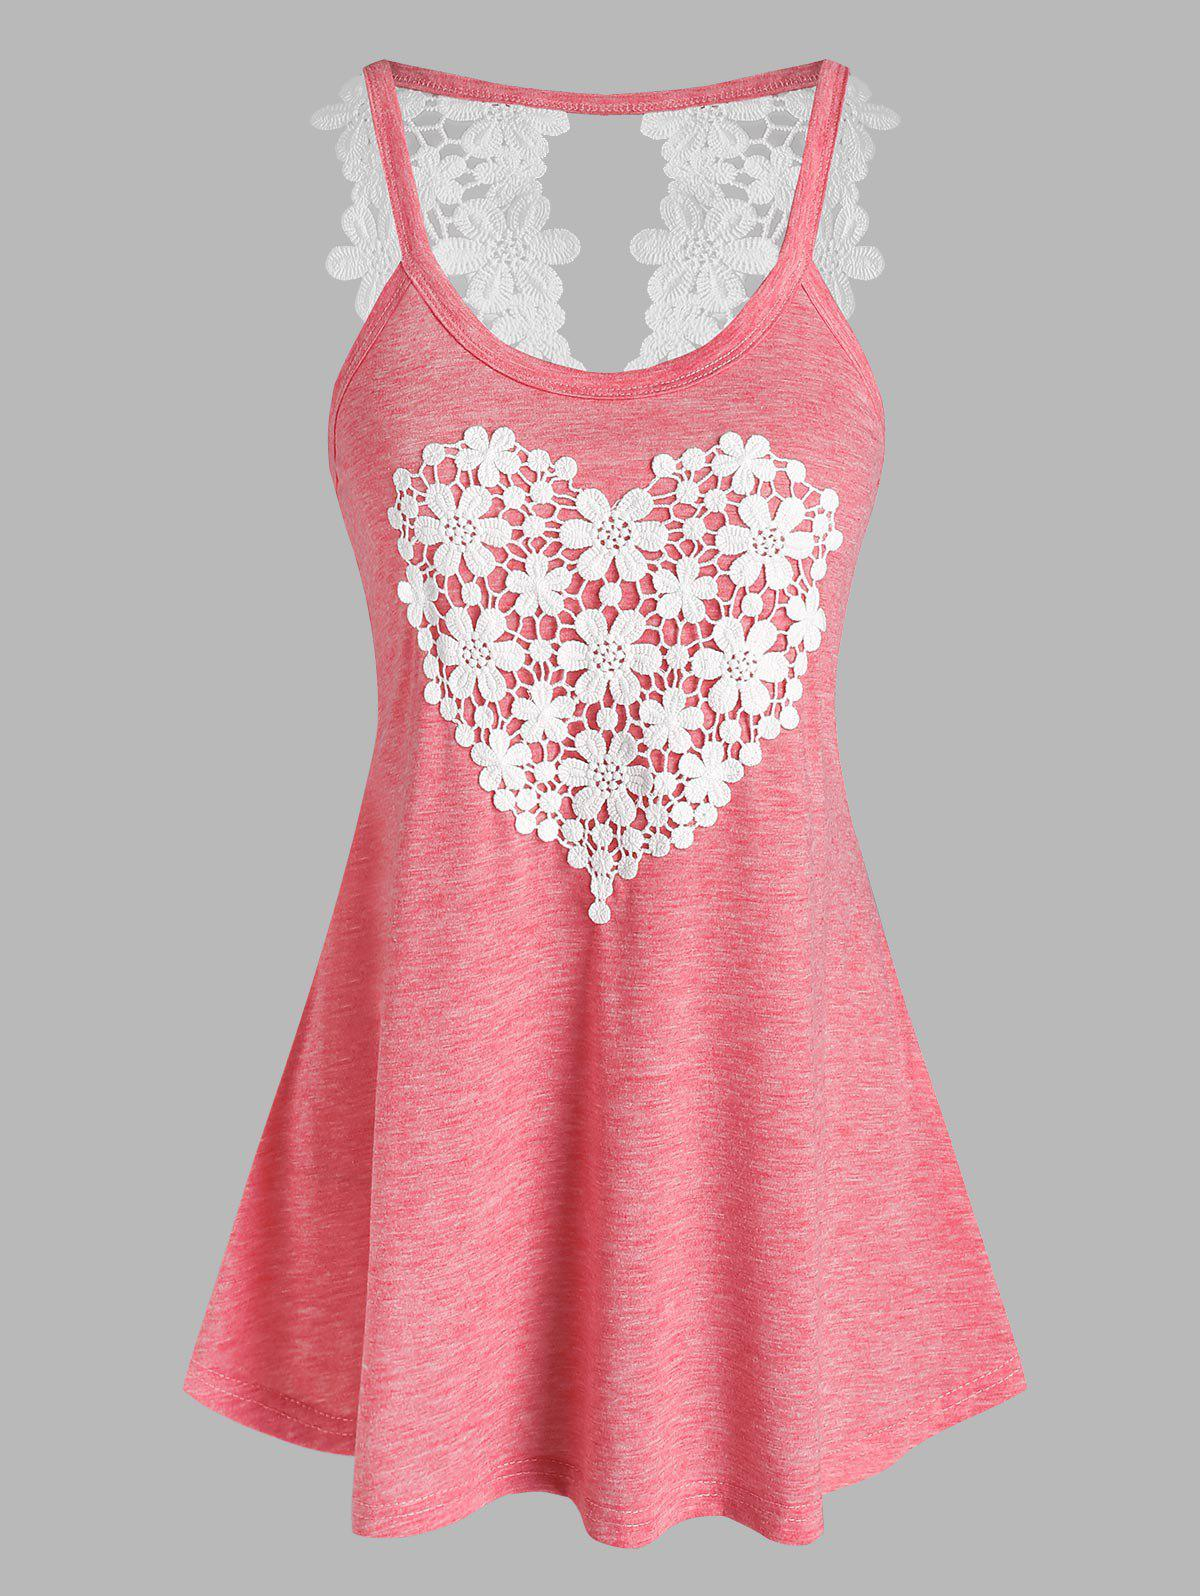 Affordable Floral Heart Pattern Applique Tank Top